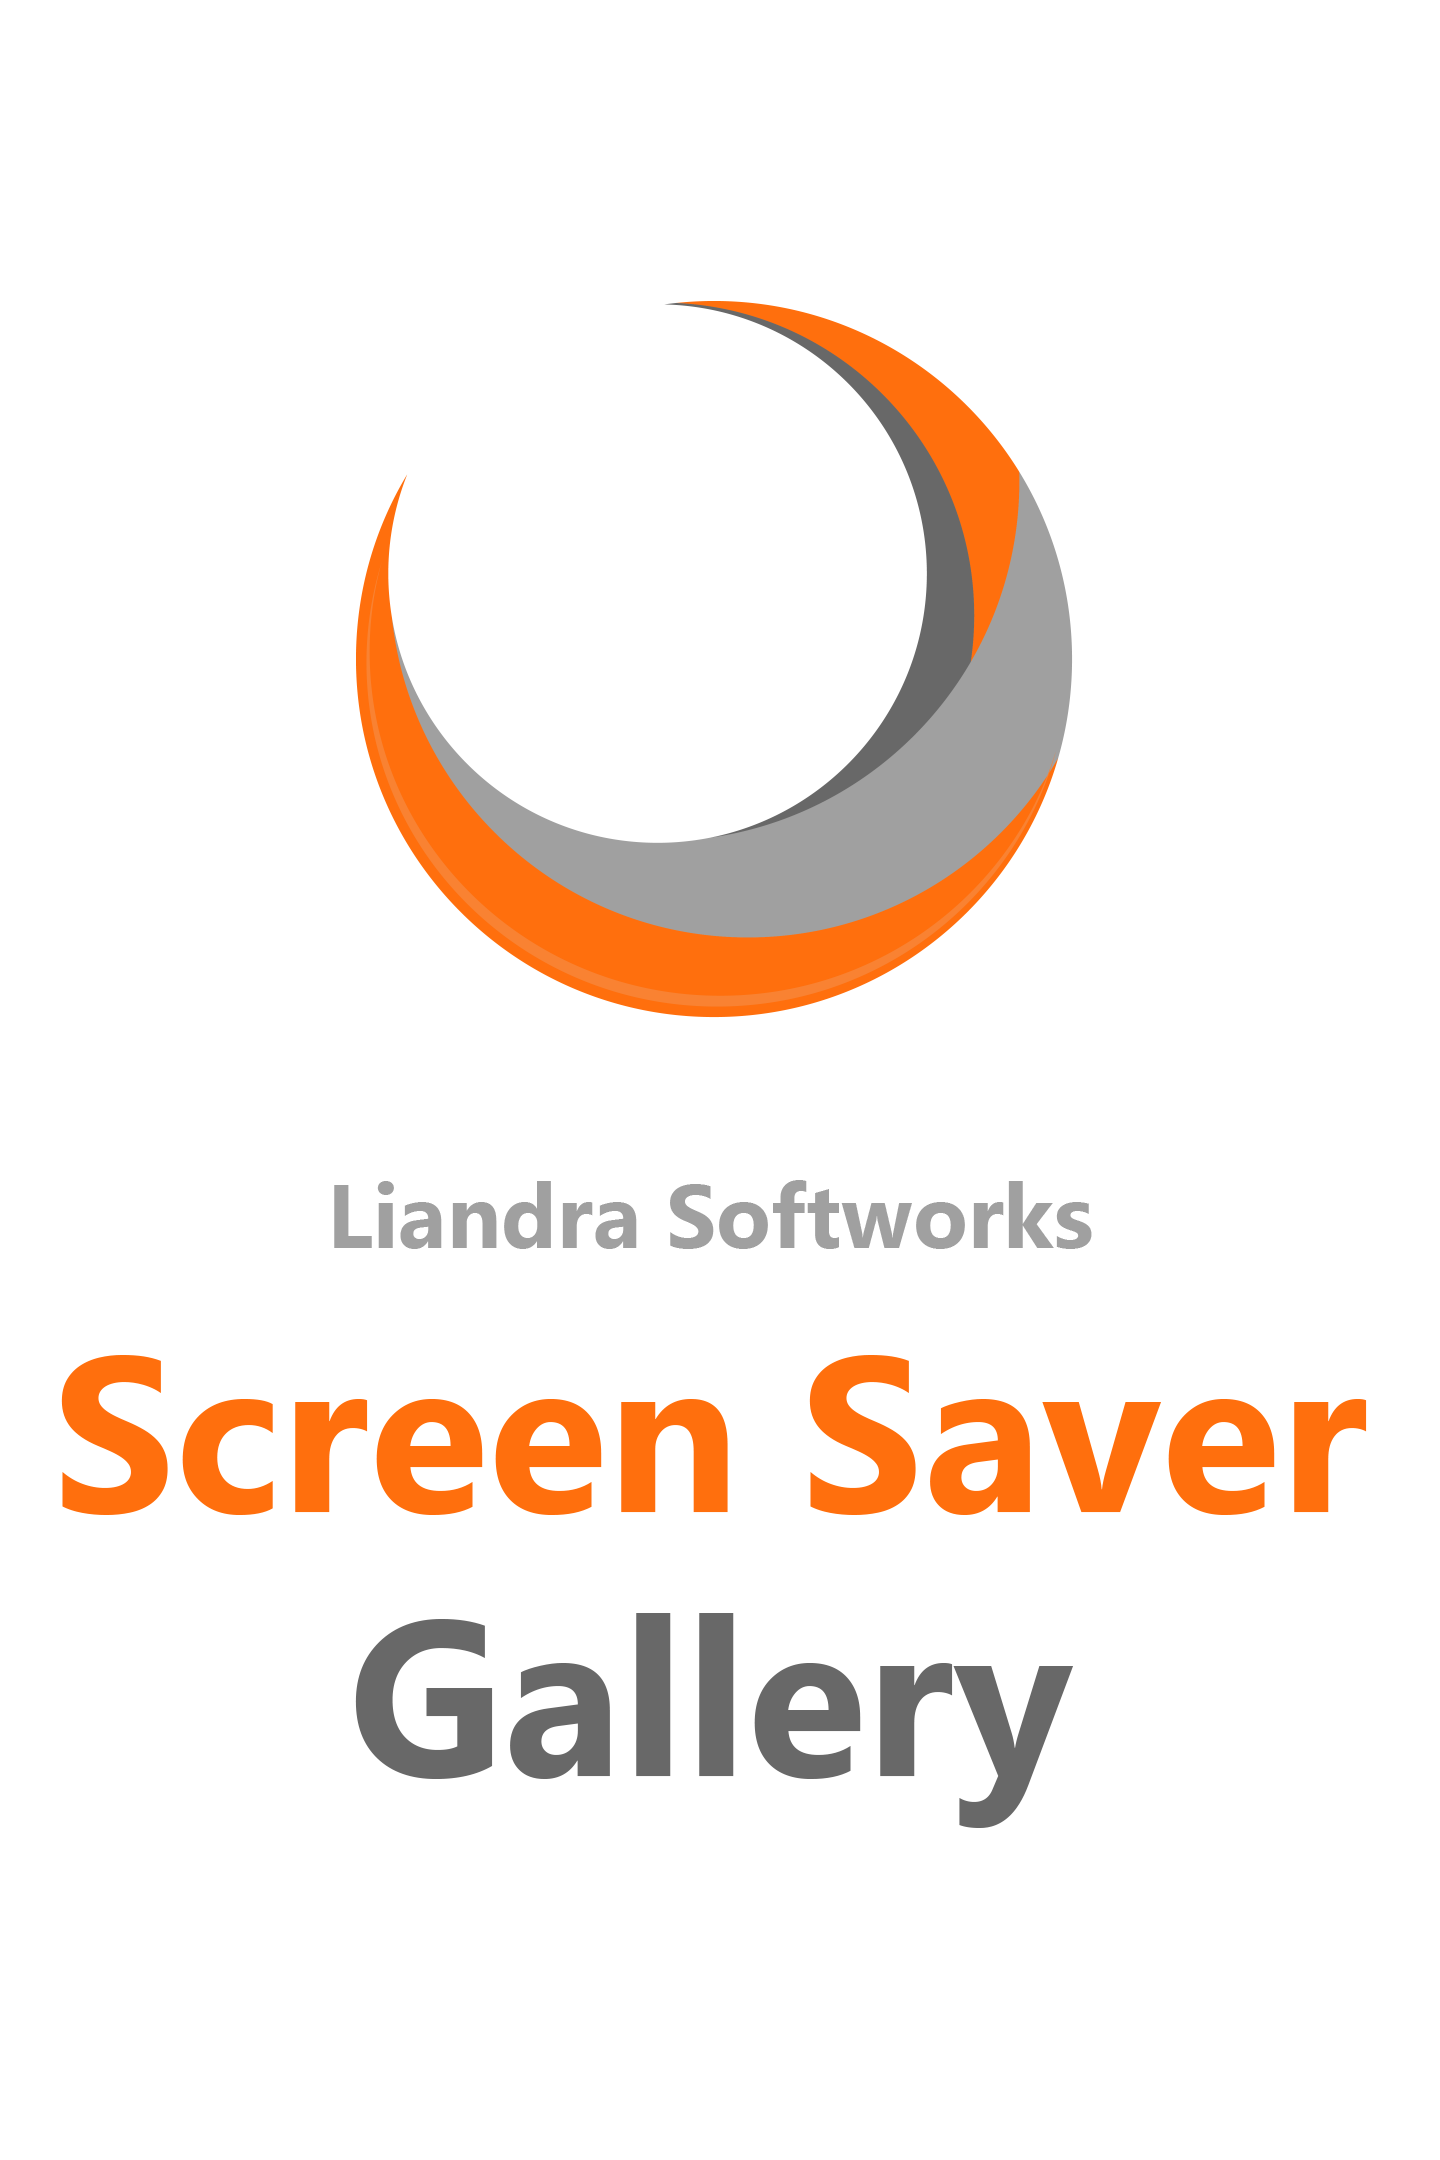 Get Screen Saver Gallery - Microsoft Store